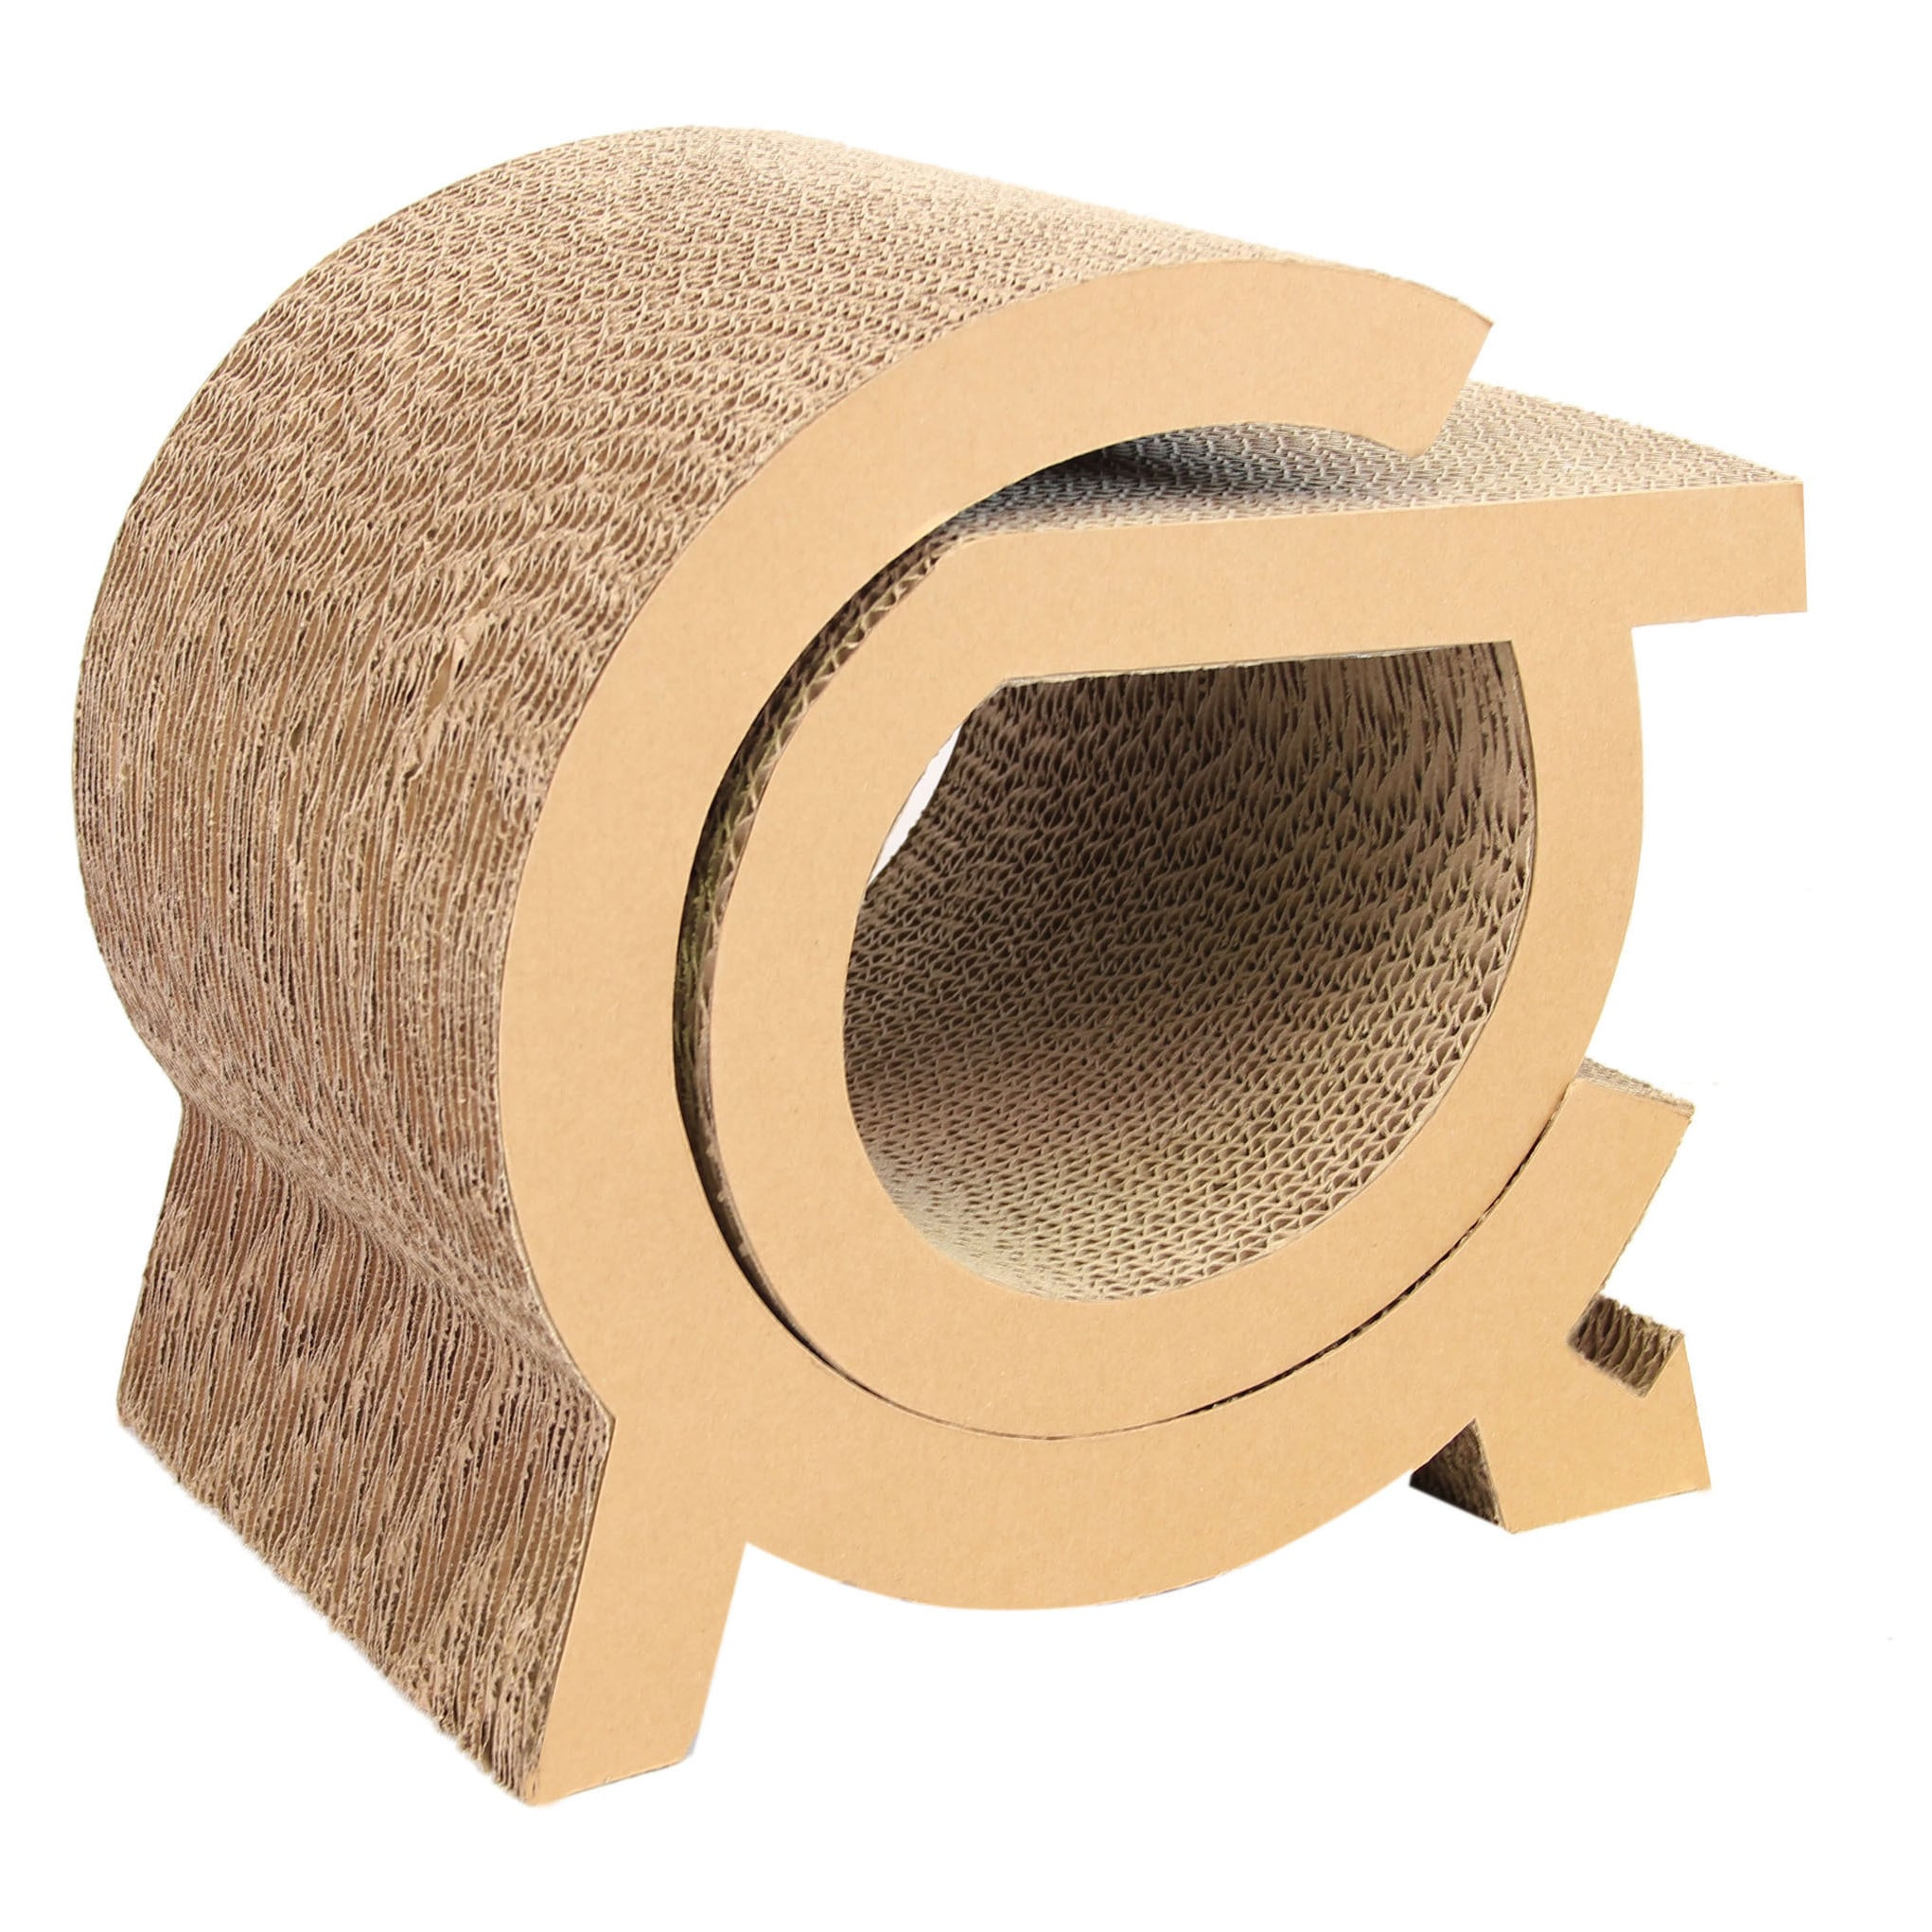 Toy Purrrfect Life Brown Paper and Cardboard Cat Scratche...